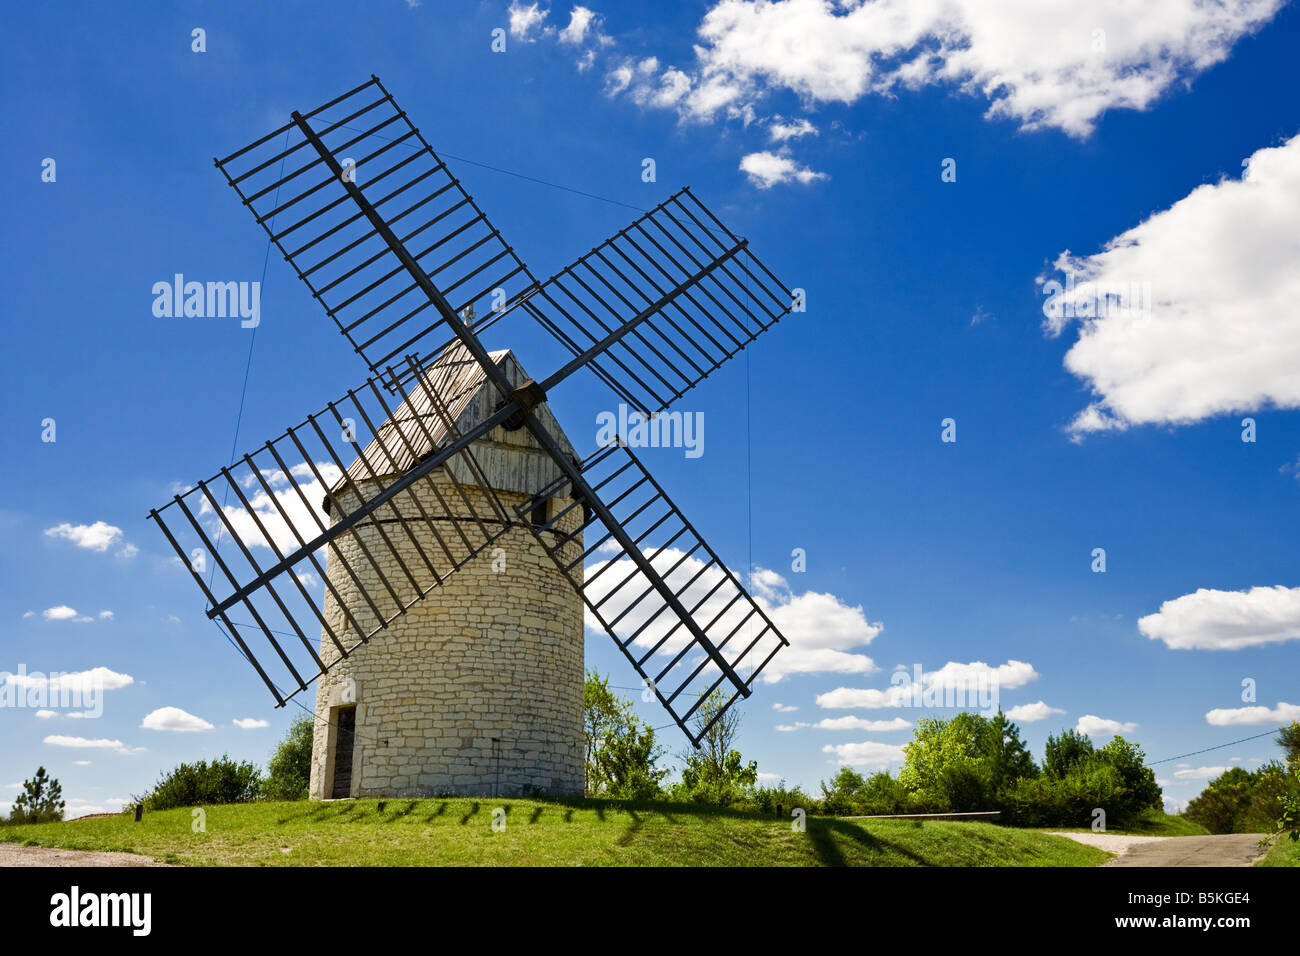 Traditional old French Windmill in the Lot region, Southern France, Europe Stock Photo